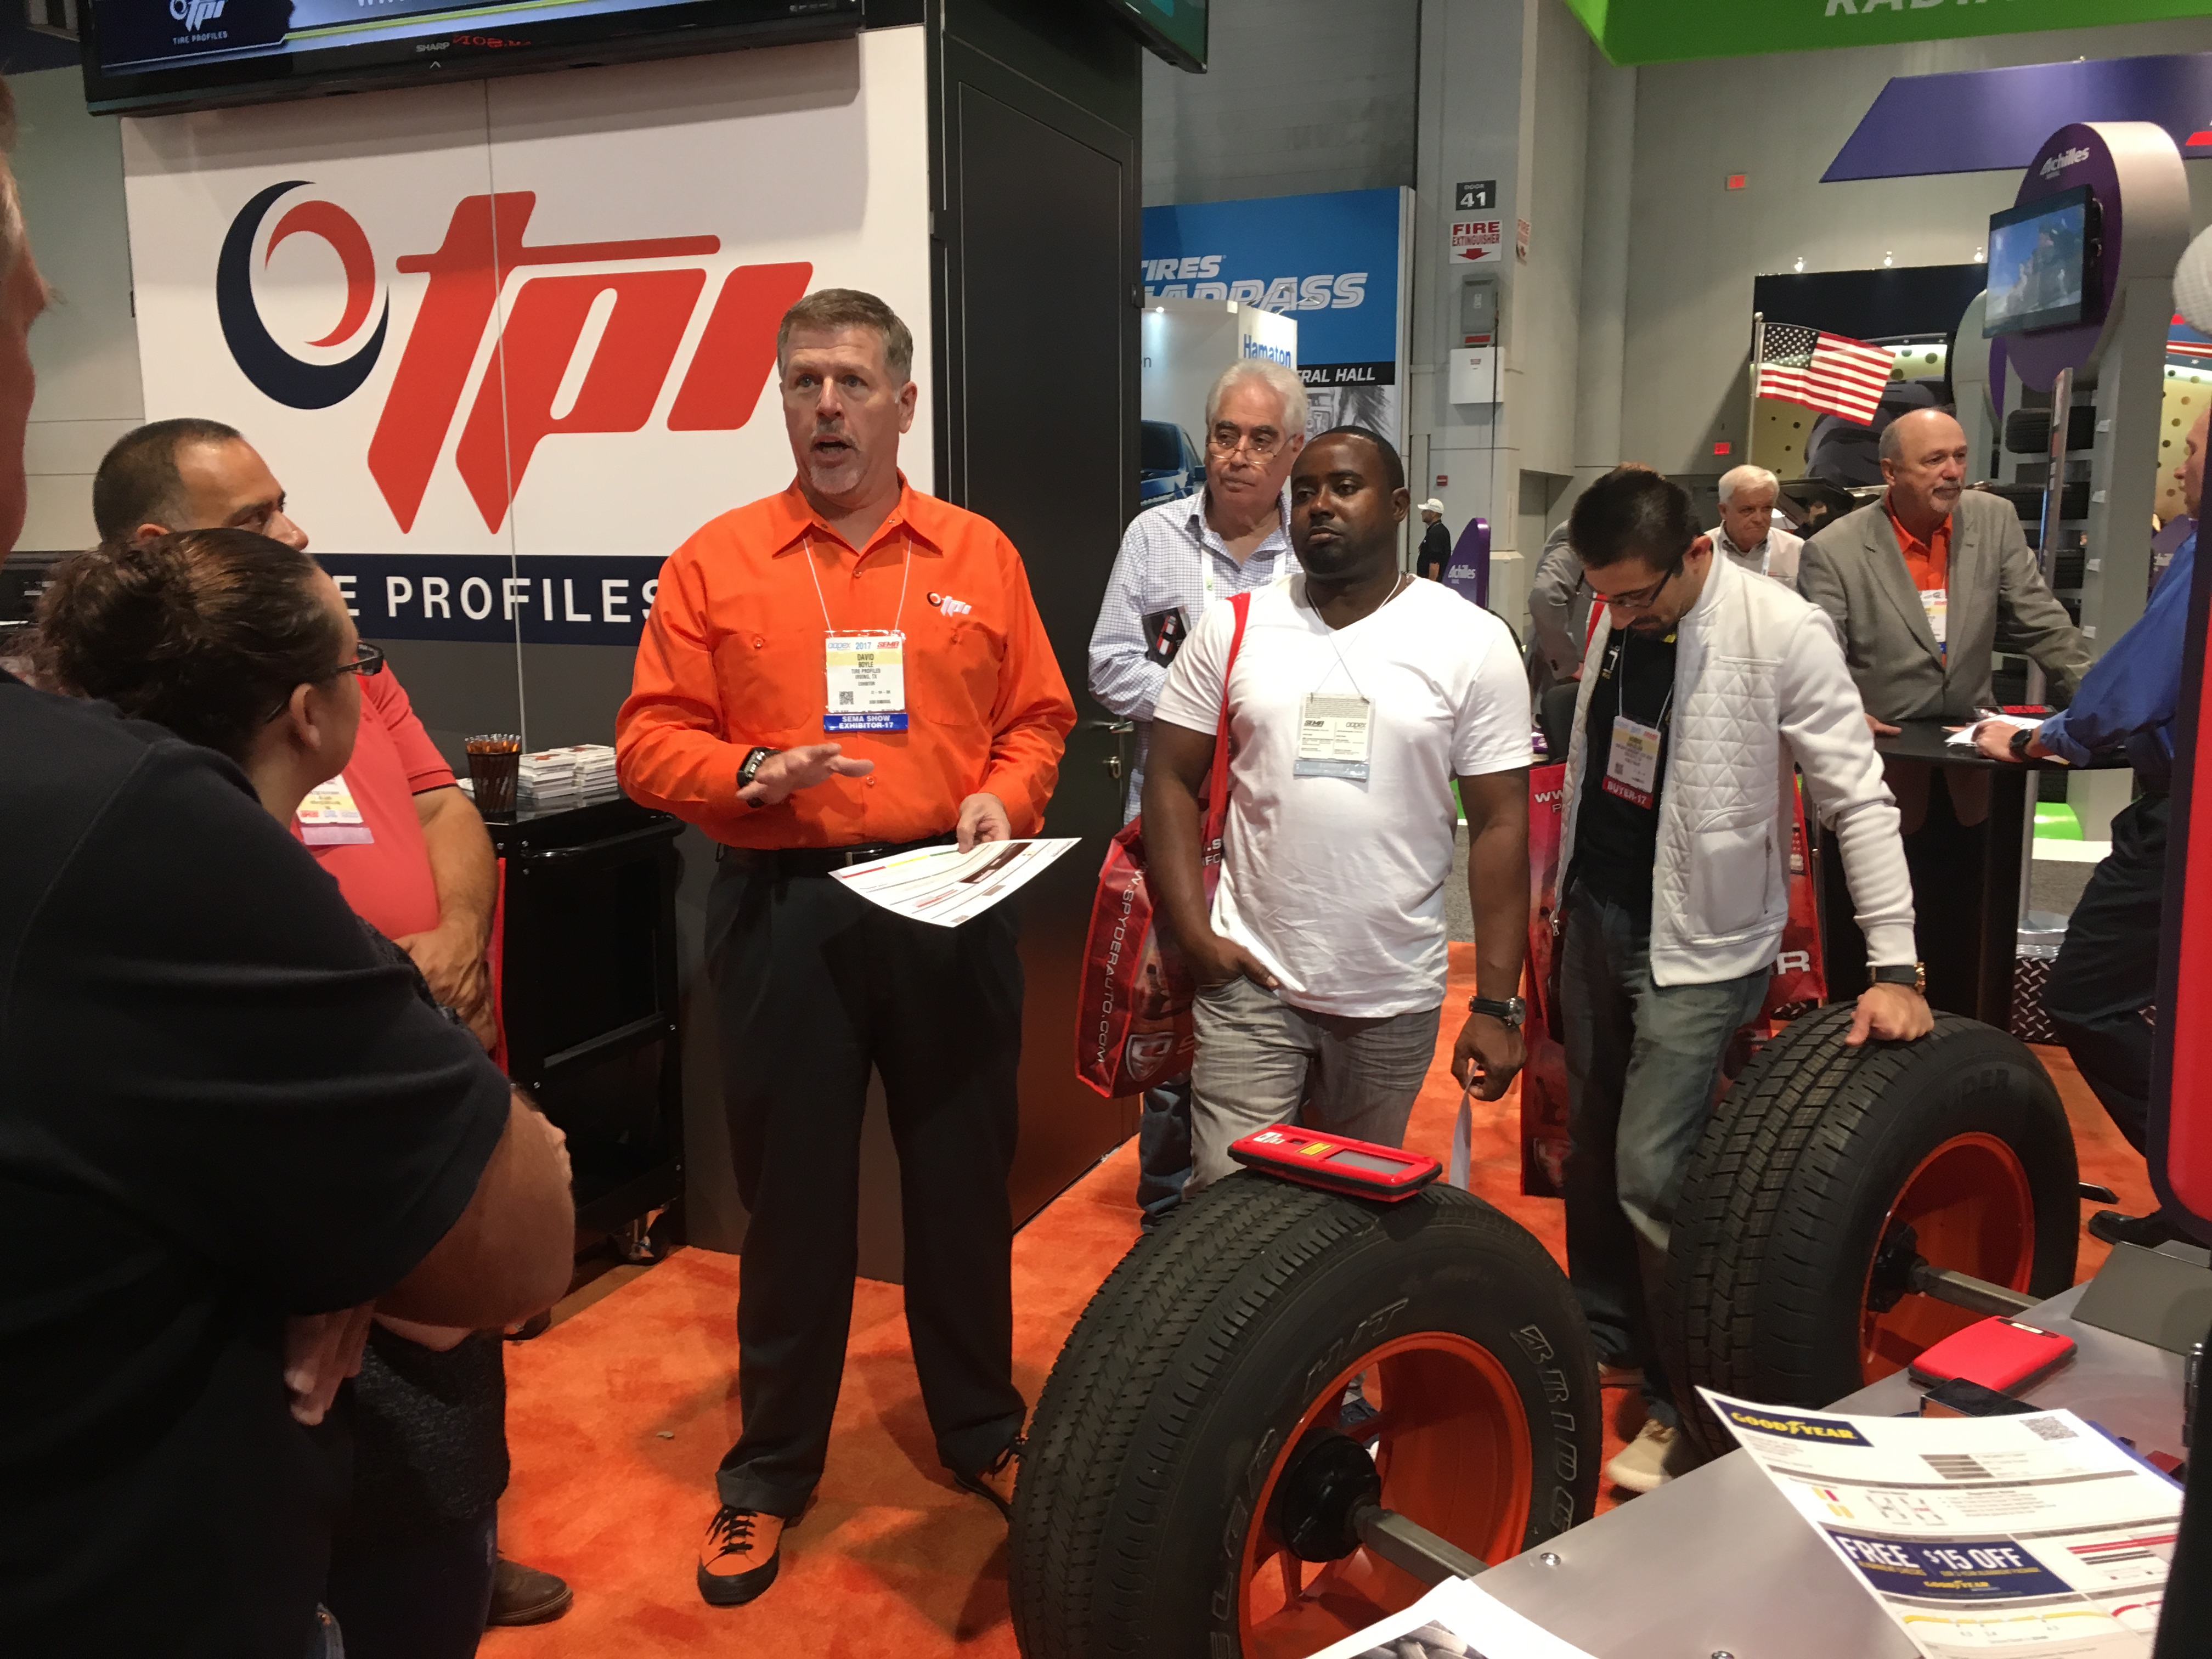 GrooveGlove Provides Handy Tread Depth and Alignment Test